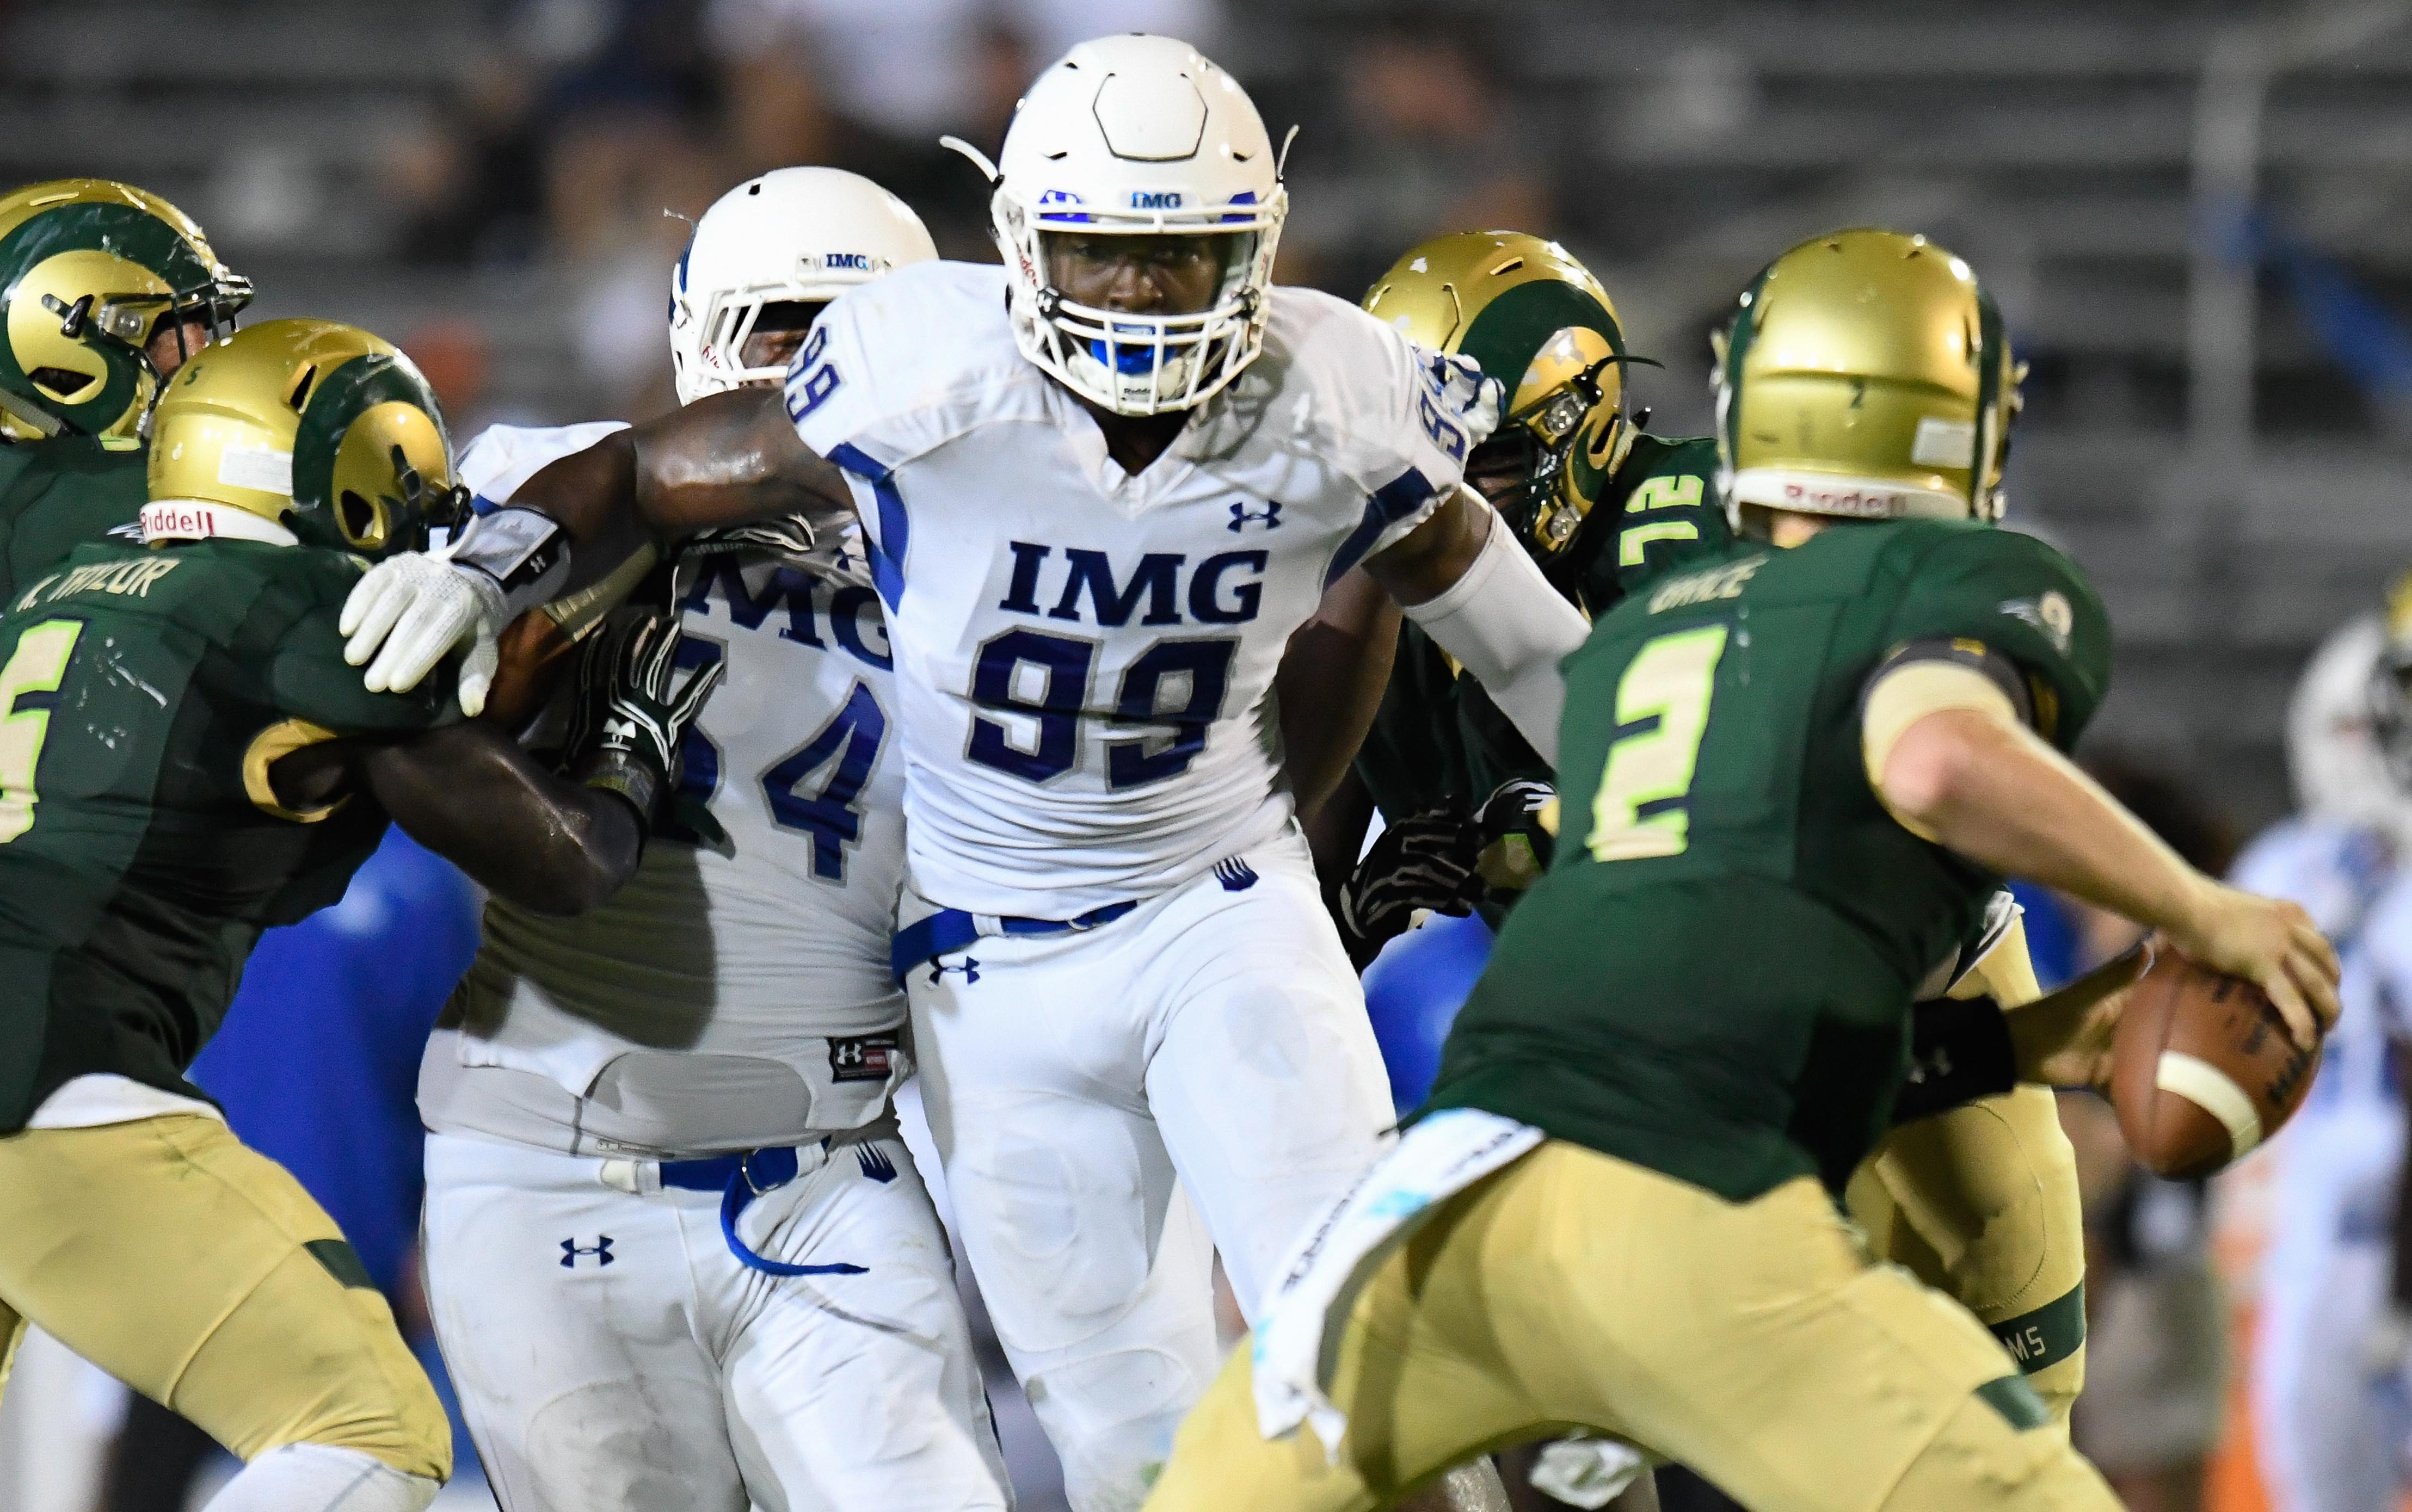 Aug 27, 2016; Loganville, GA, USA; IMG Academy defender Josh Kaindoh (99) rushes the passer against the Grayson Rams during the second half in a high school football duel of top ranked teams at Grayson Community Stadium. IMG Academy defeated the Grayson Rams 26-7. Mandatory Credit: Dale Zanine-USA TODAY Sports ORIG FILE ID: 20160827_sal_sz2_198.JPG